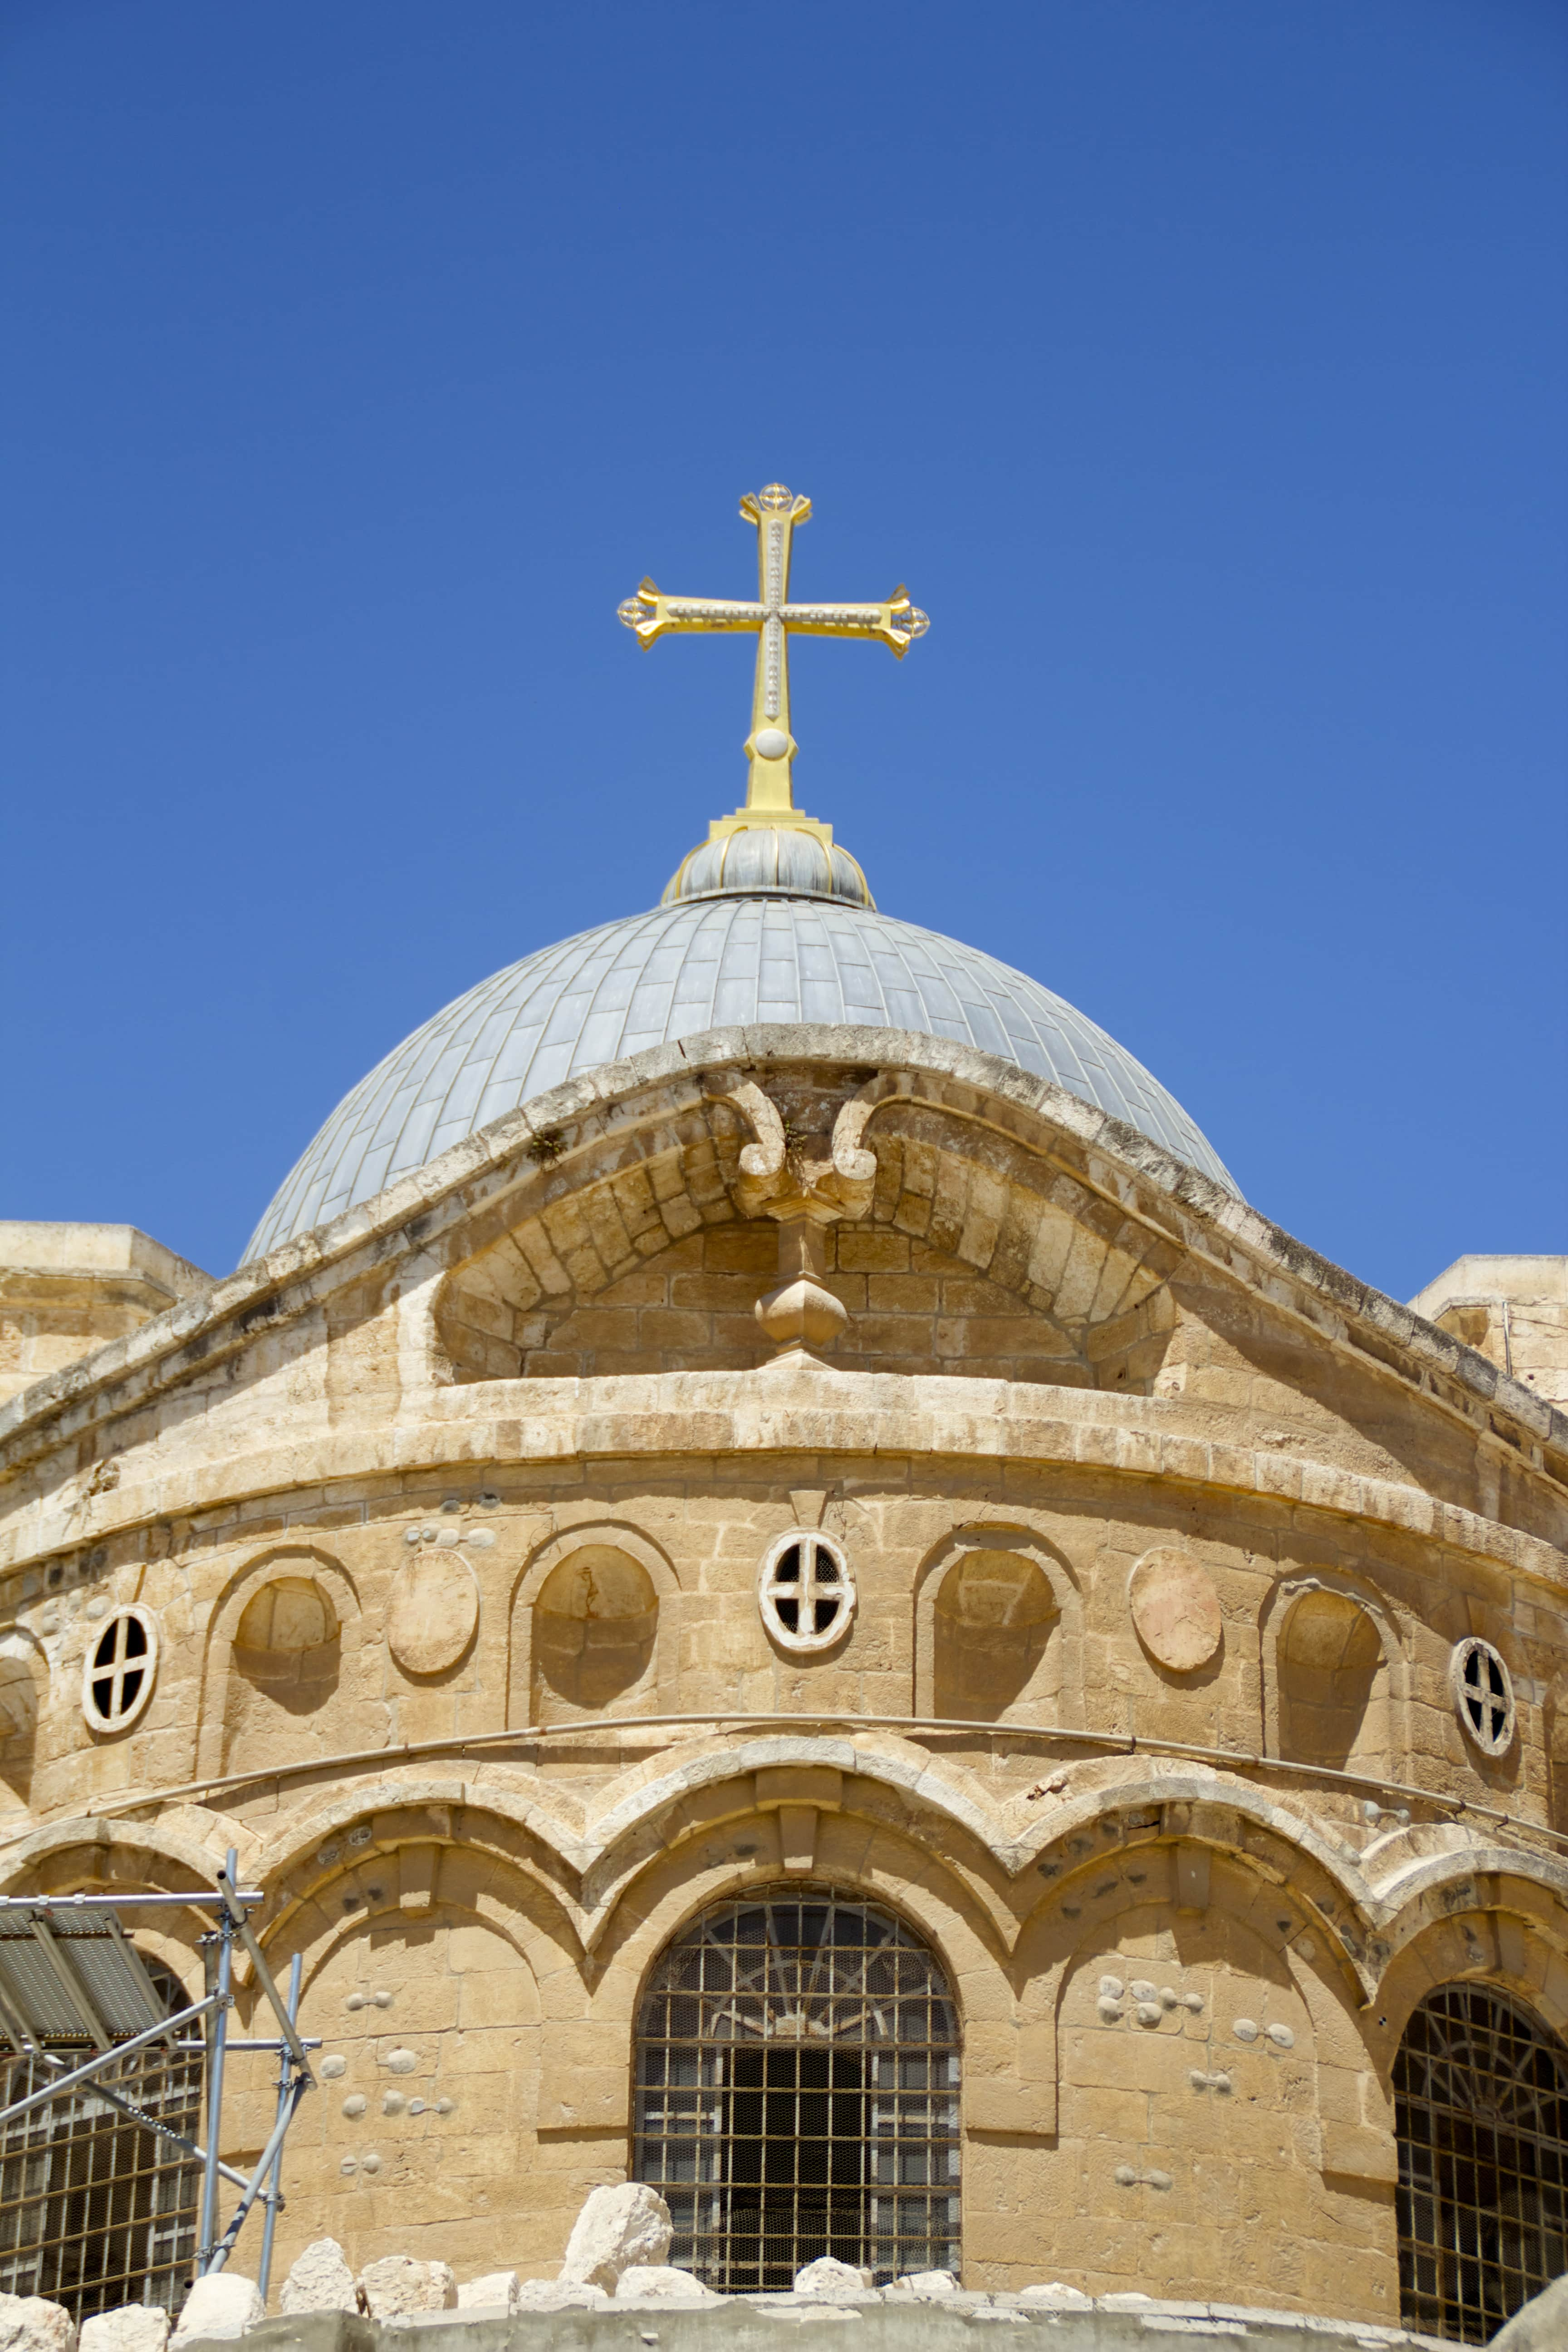 Via Dolorosa & Church of the Holy Sepulchre